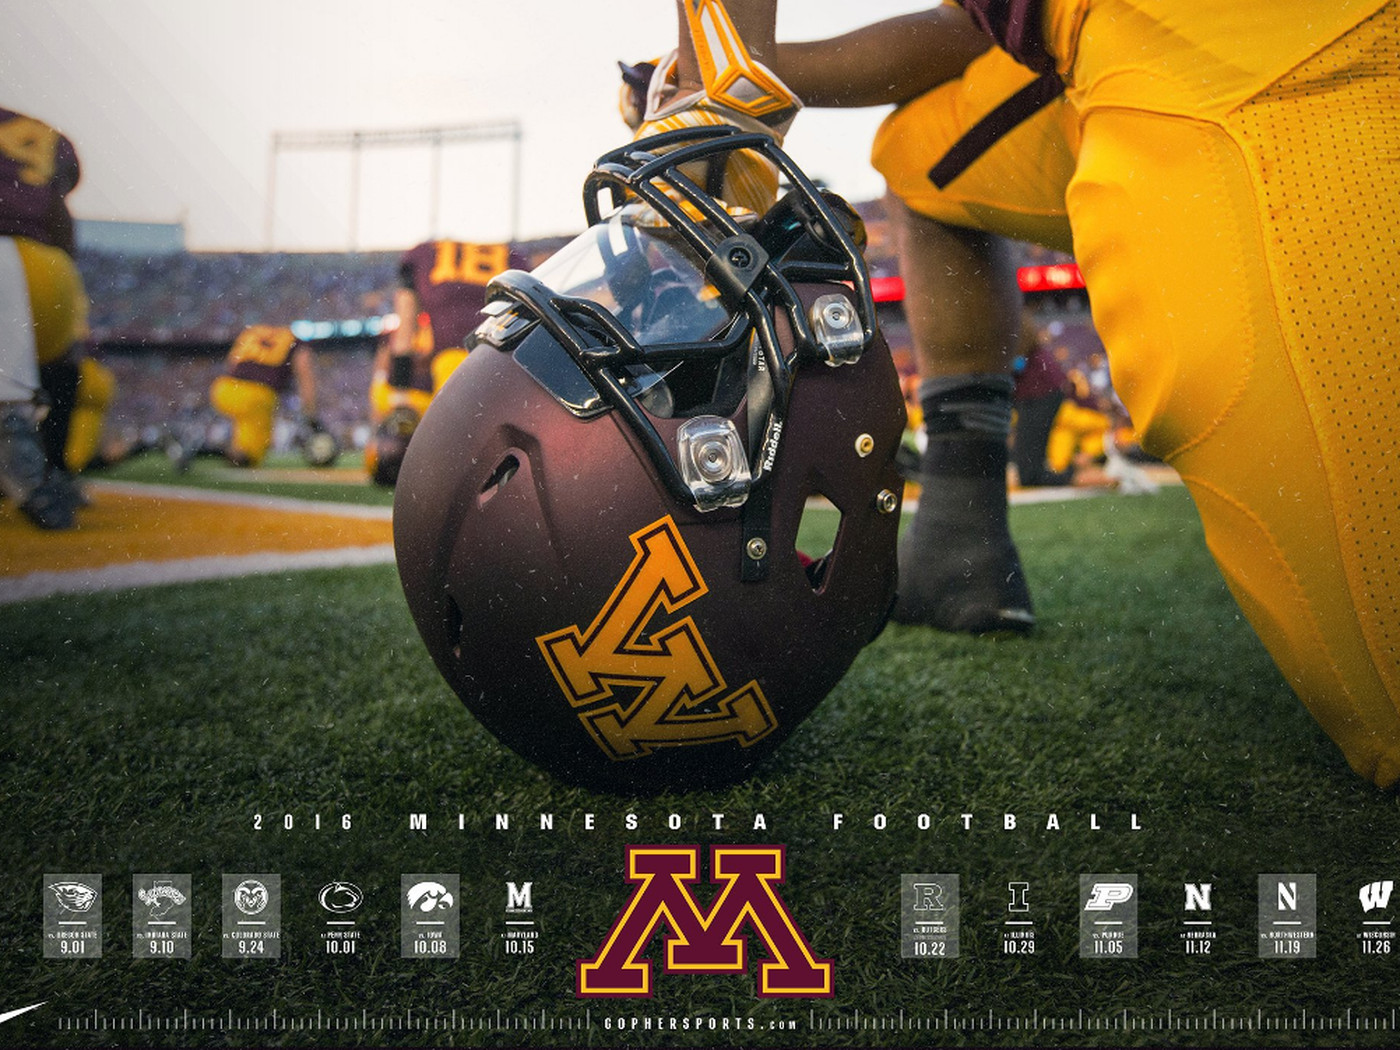 Ranking Minnesota Football S Schedule Posters For 2016 The Daily Gopher